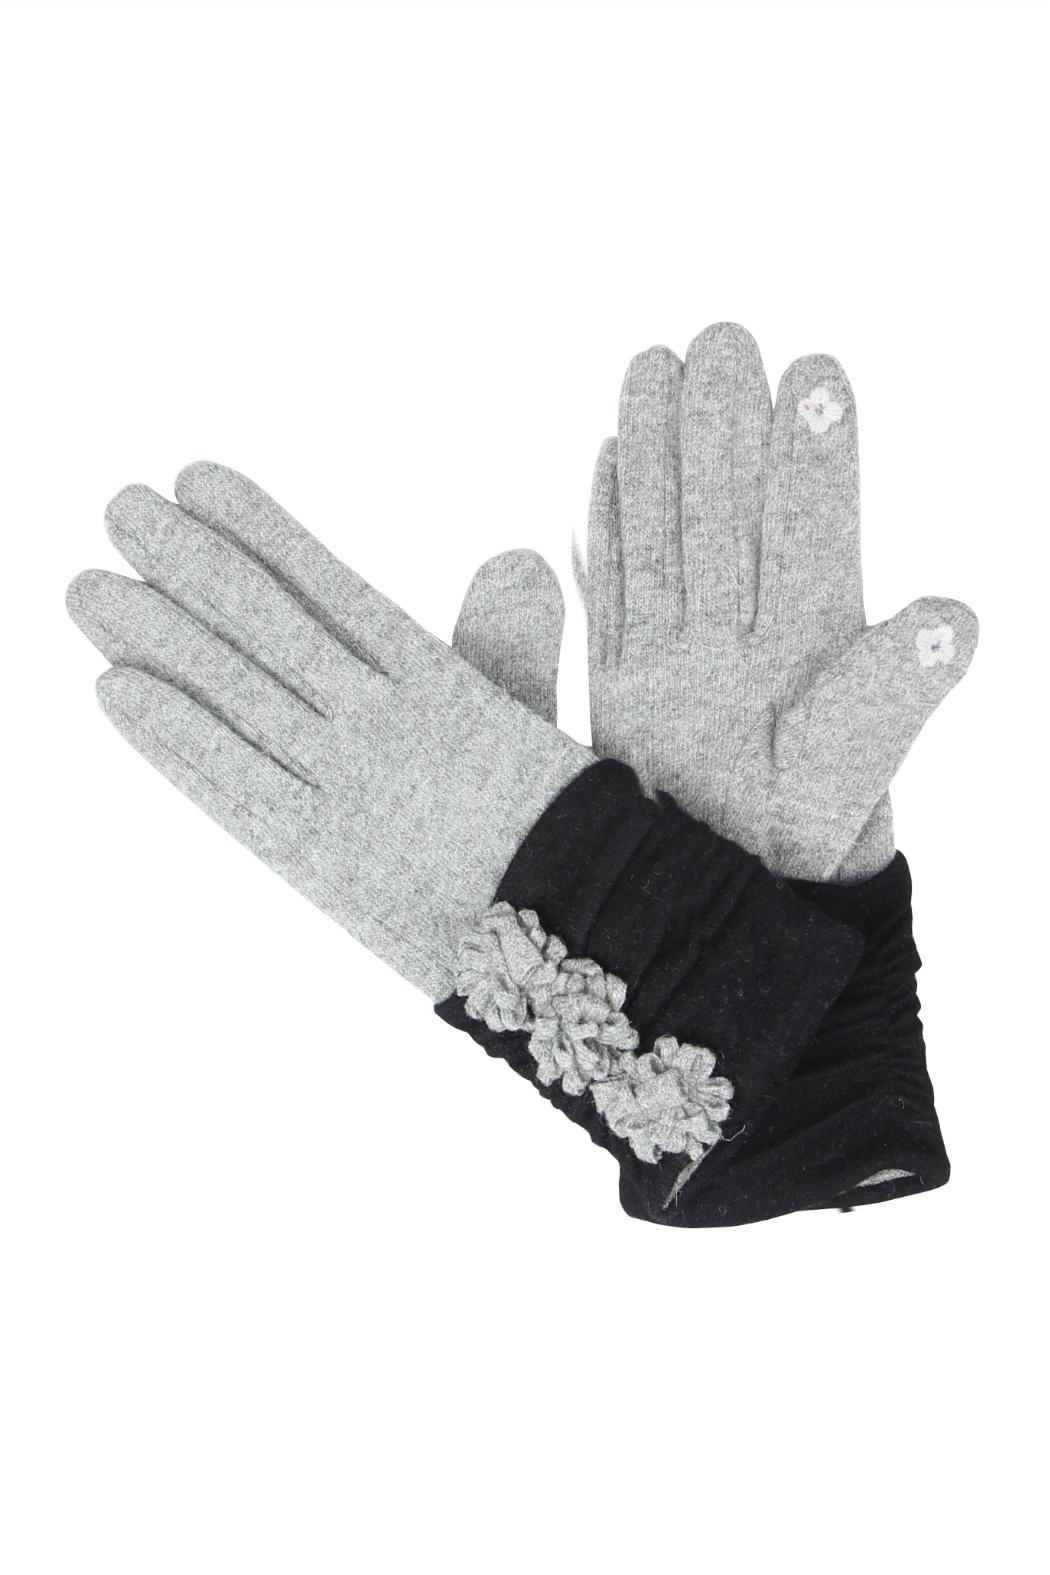 Victoria Leland Designs Wool Texting Gloves - Front Cropped Image